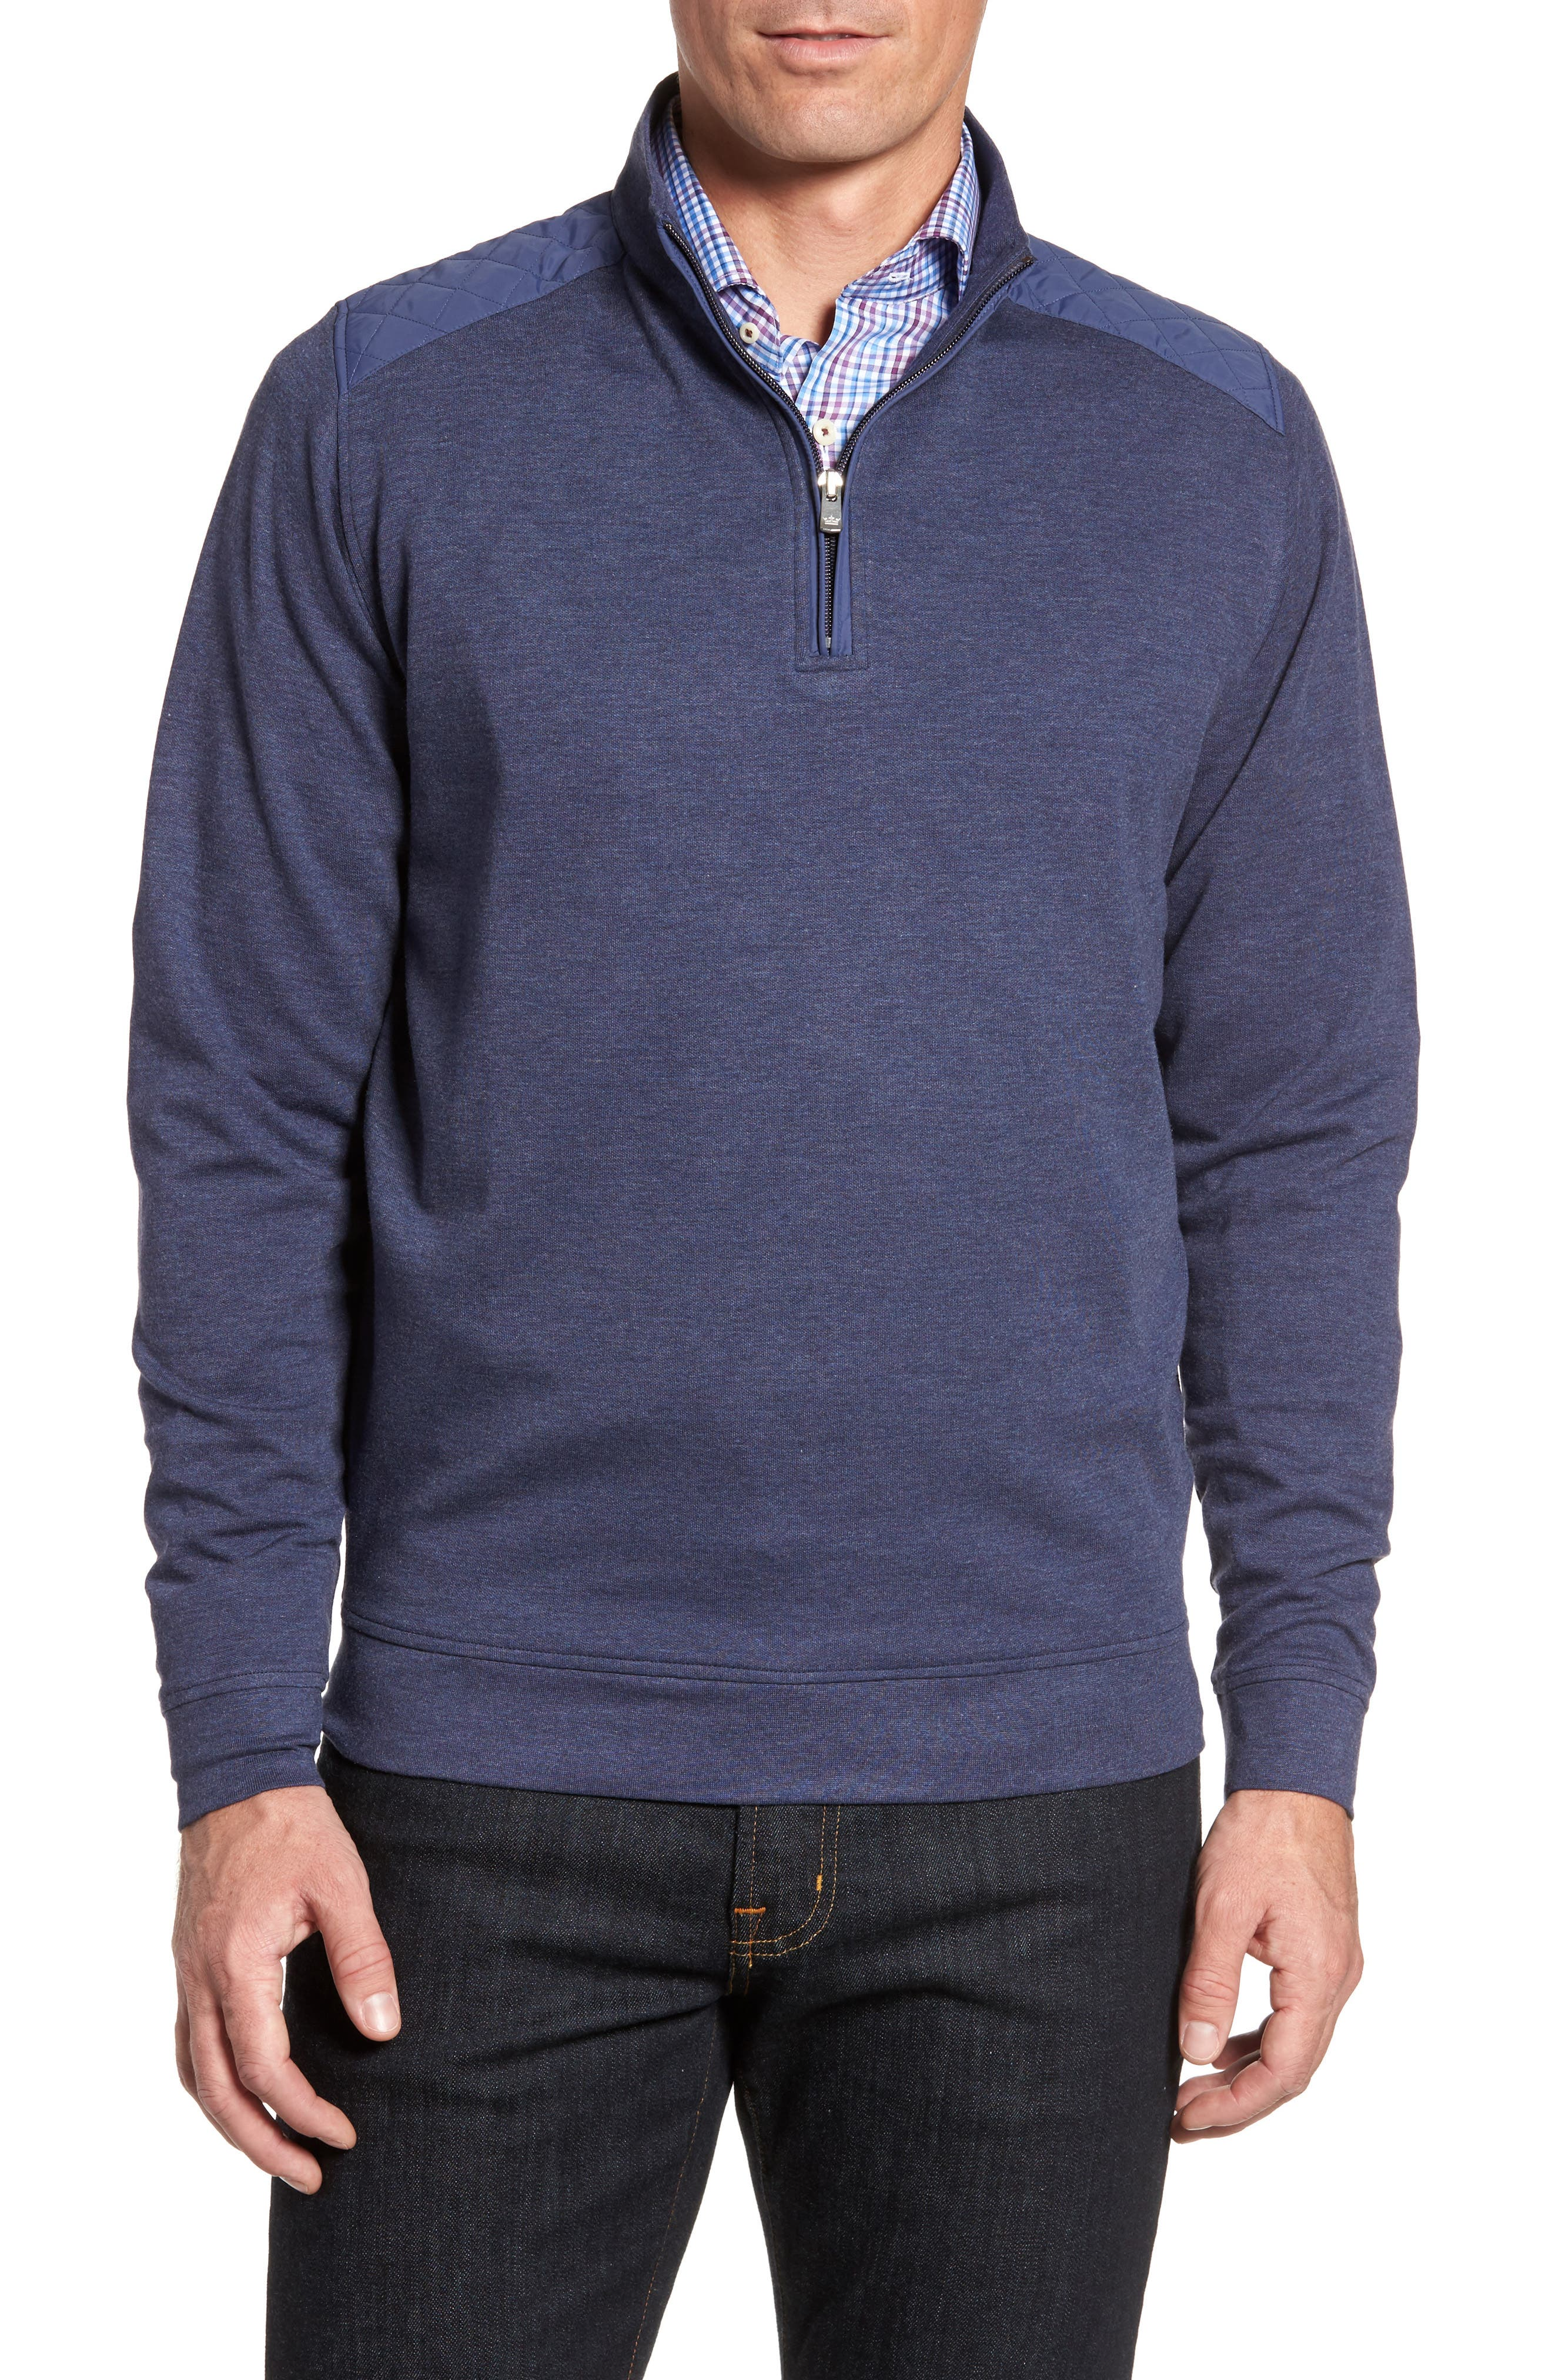 Boating Quarter Zip Pullover,                         Main,                         color,